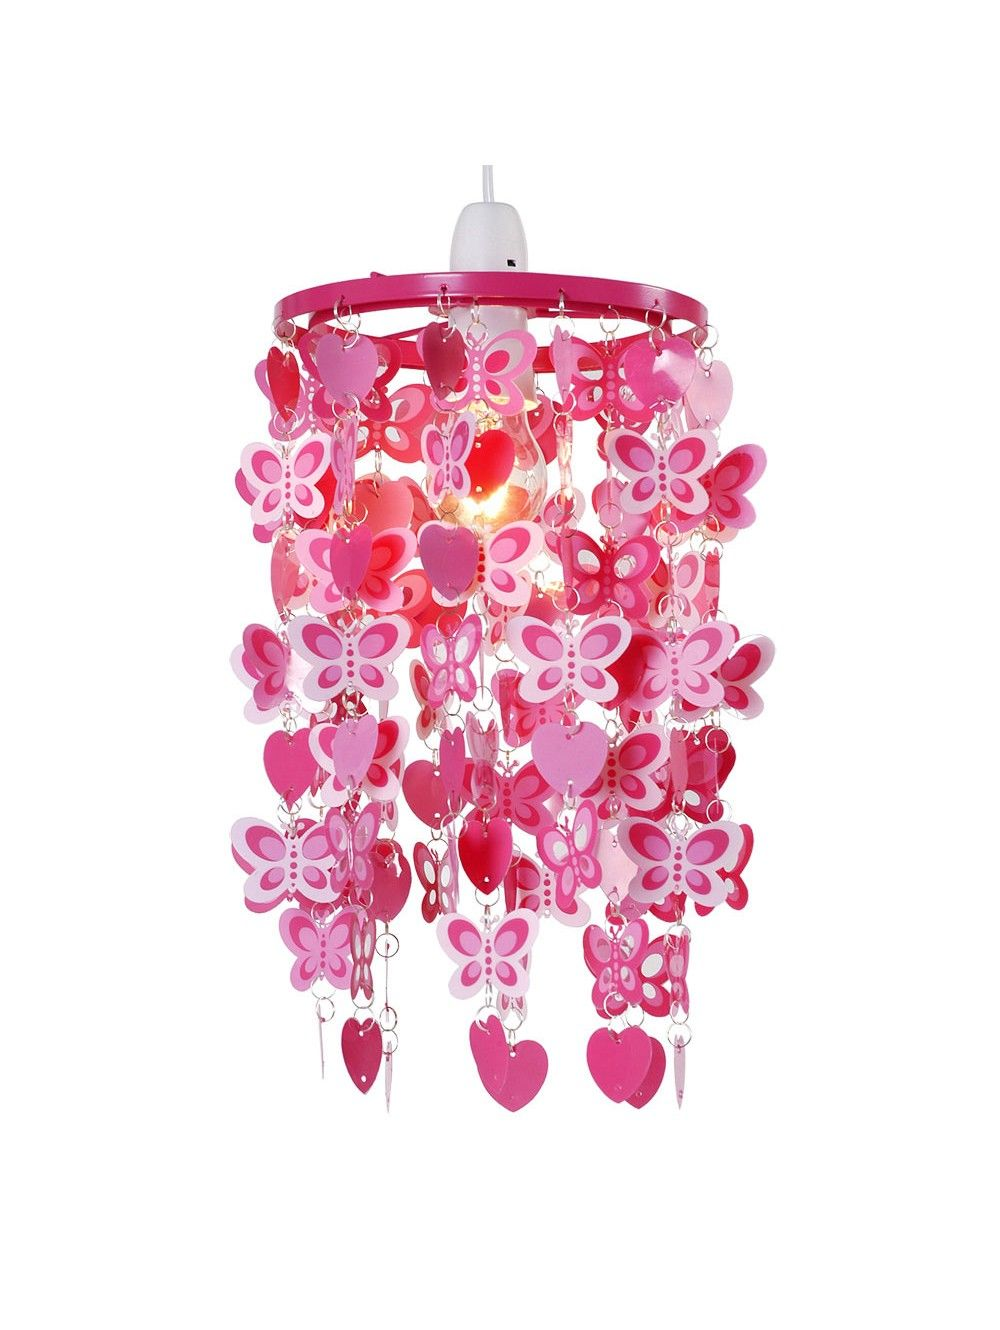 Children s Bedroom Pendant Ceiling Light Shade Width Pink Hearts    Butterfly Detail. Children s Bedroom Pendant Ceiling Light Shade Width Pink Hearts